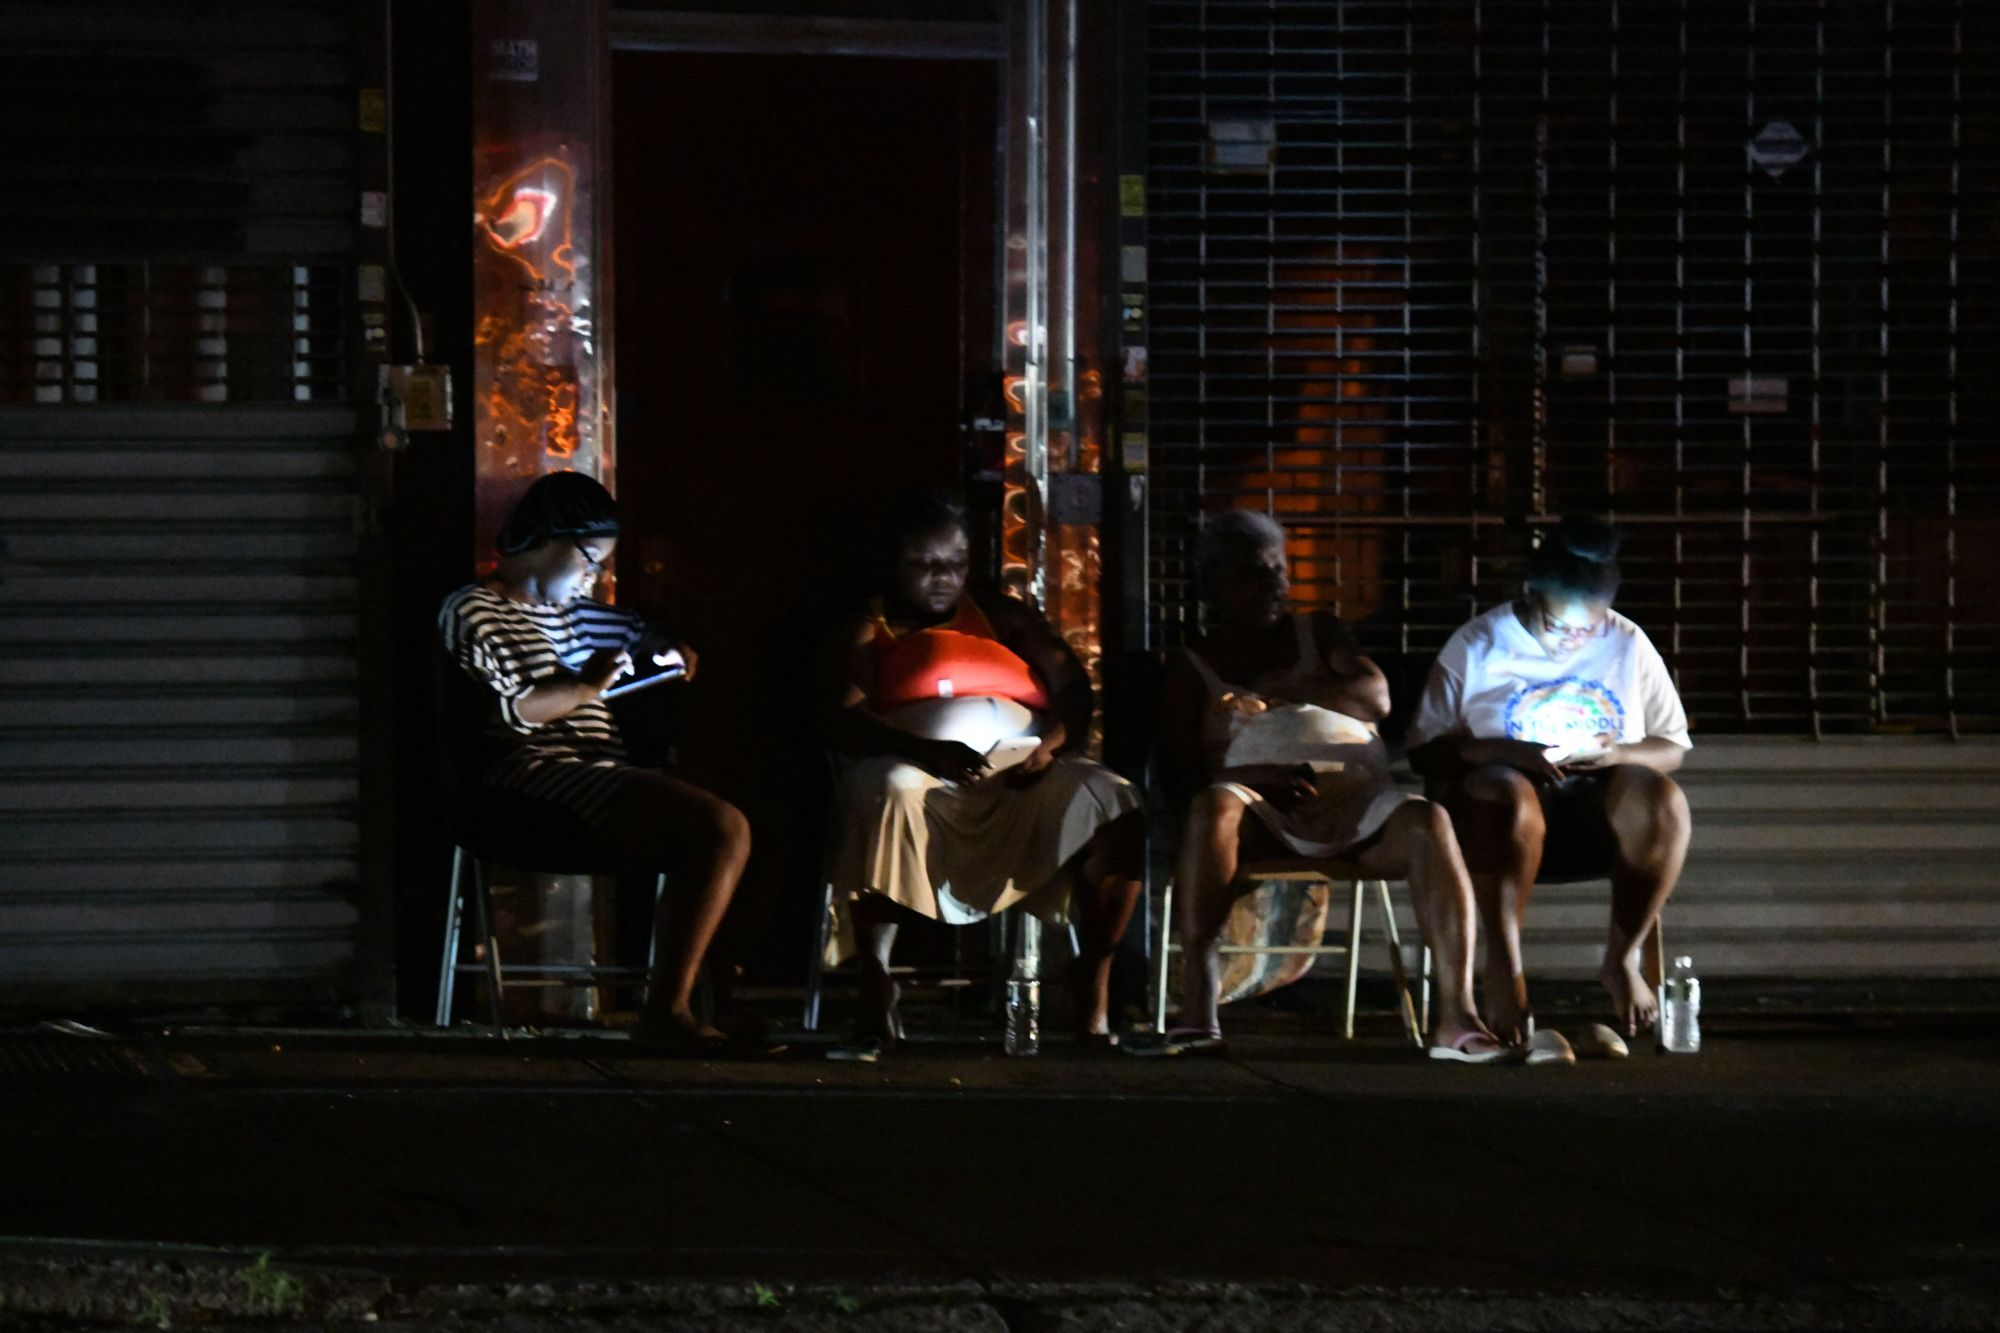 City Asks Residents and Businesses to Conserve Energy As Outages Loom